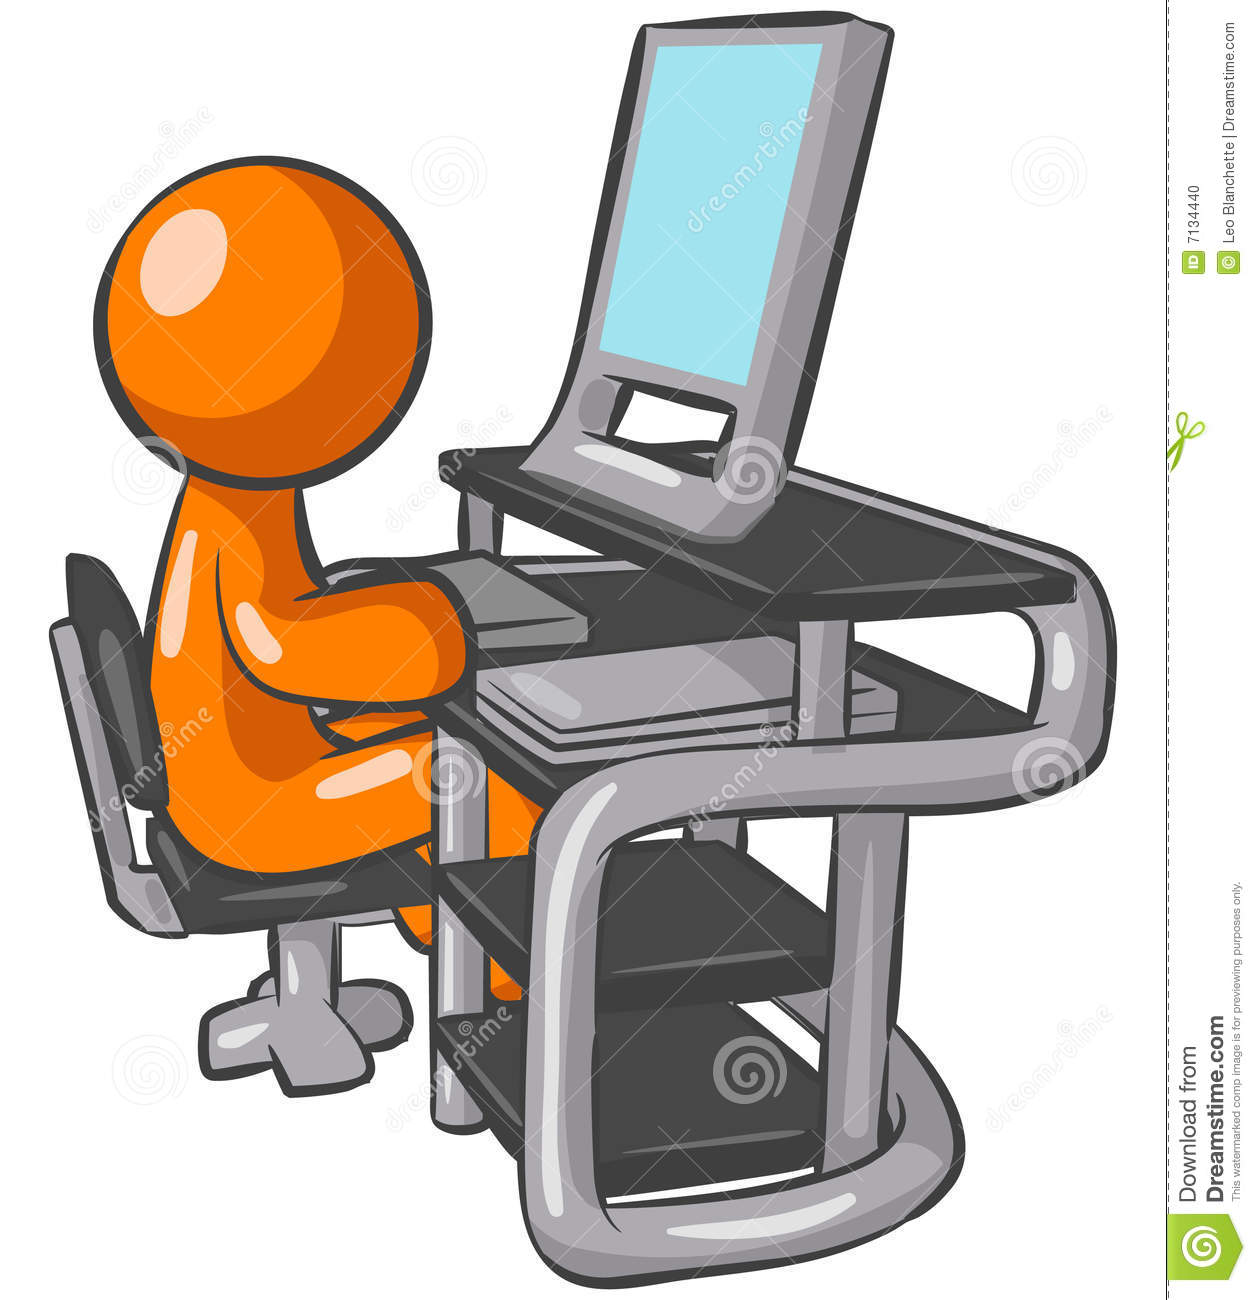 Computer Operator stock vector. Illustration of person.